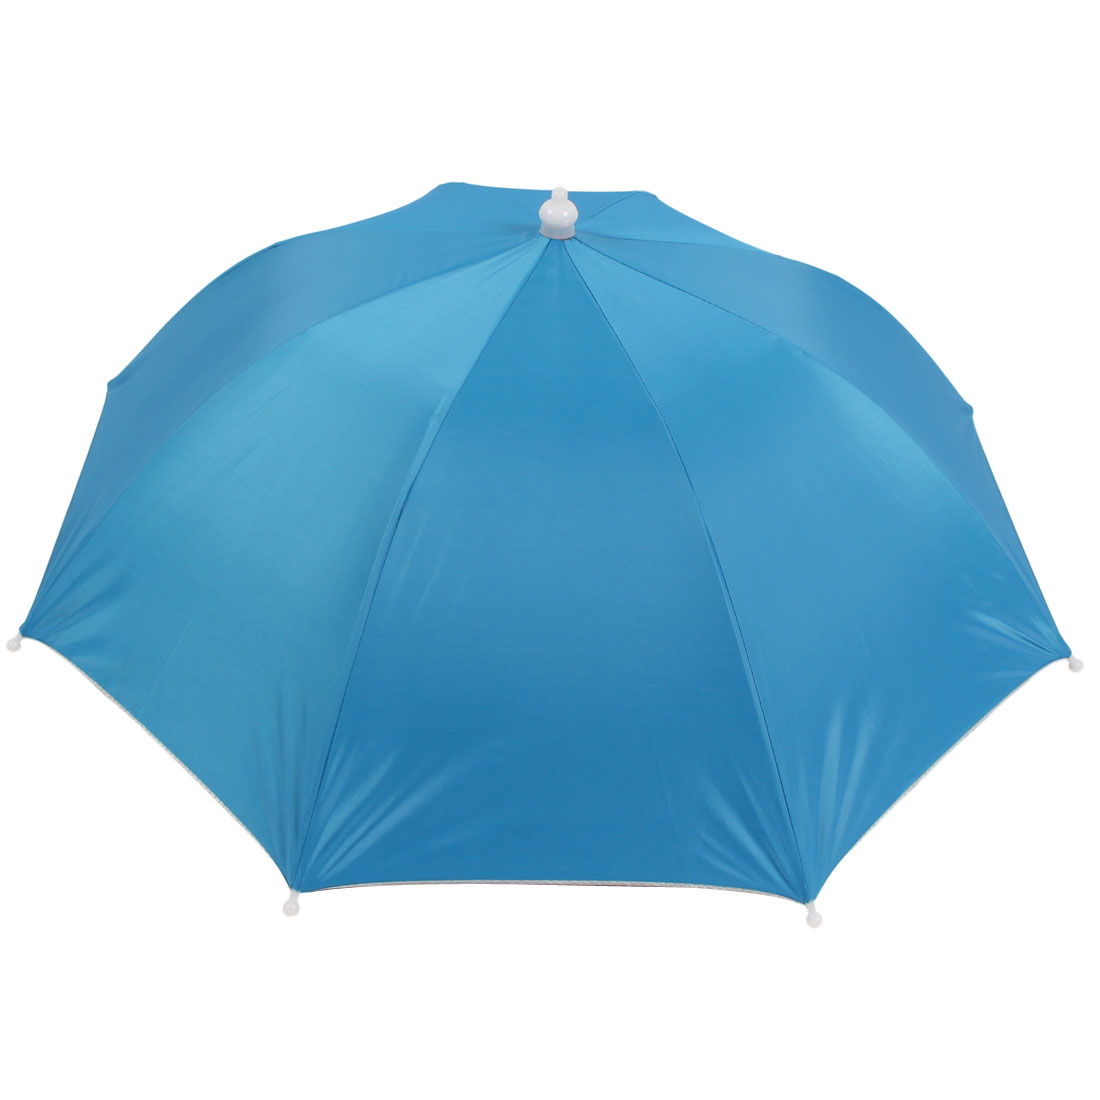 "28"" Diameter 8 Ribs Foldable Polyester Fishing Umbrella Hat Skyblue"